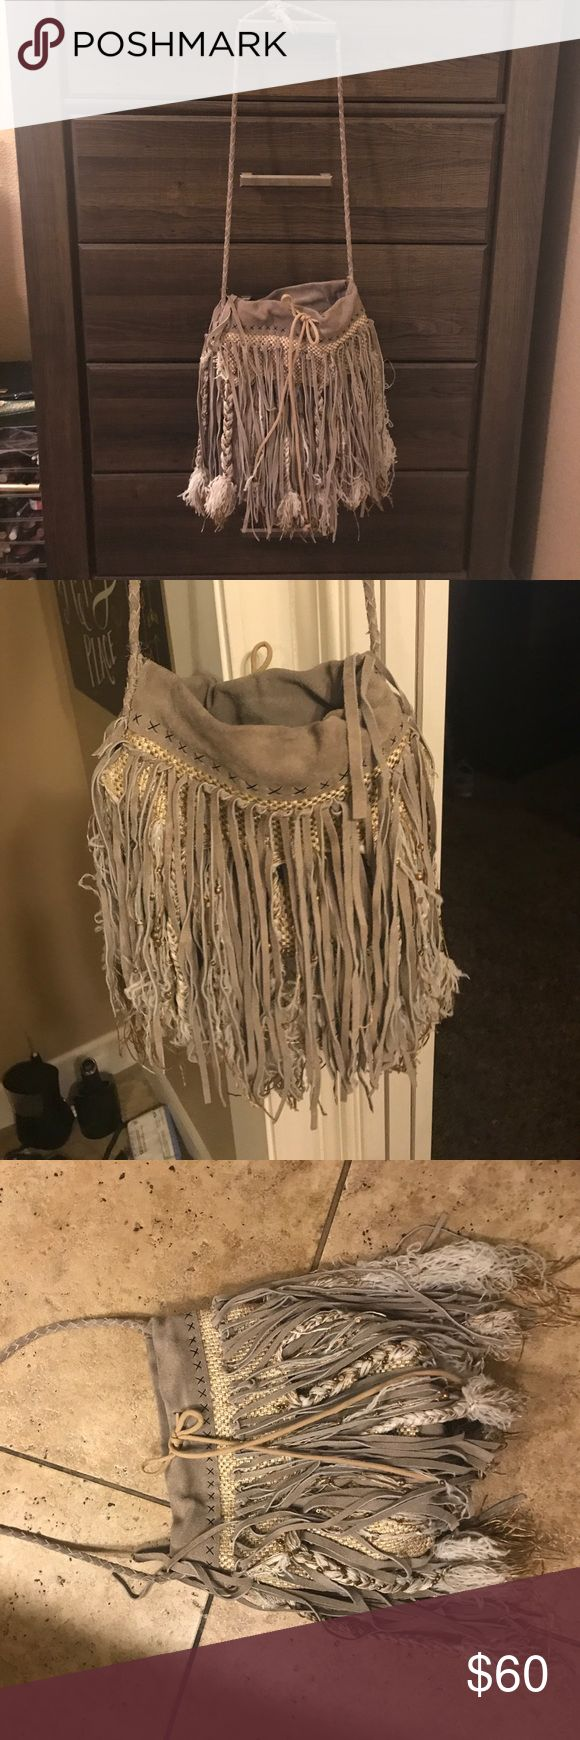 Free people fringe festival bag Free people fringe bag. Used a couple times. Great condition. Perfect for music festivals. Free People Bags Hobos